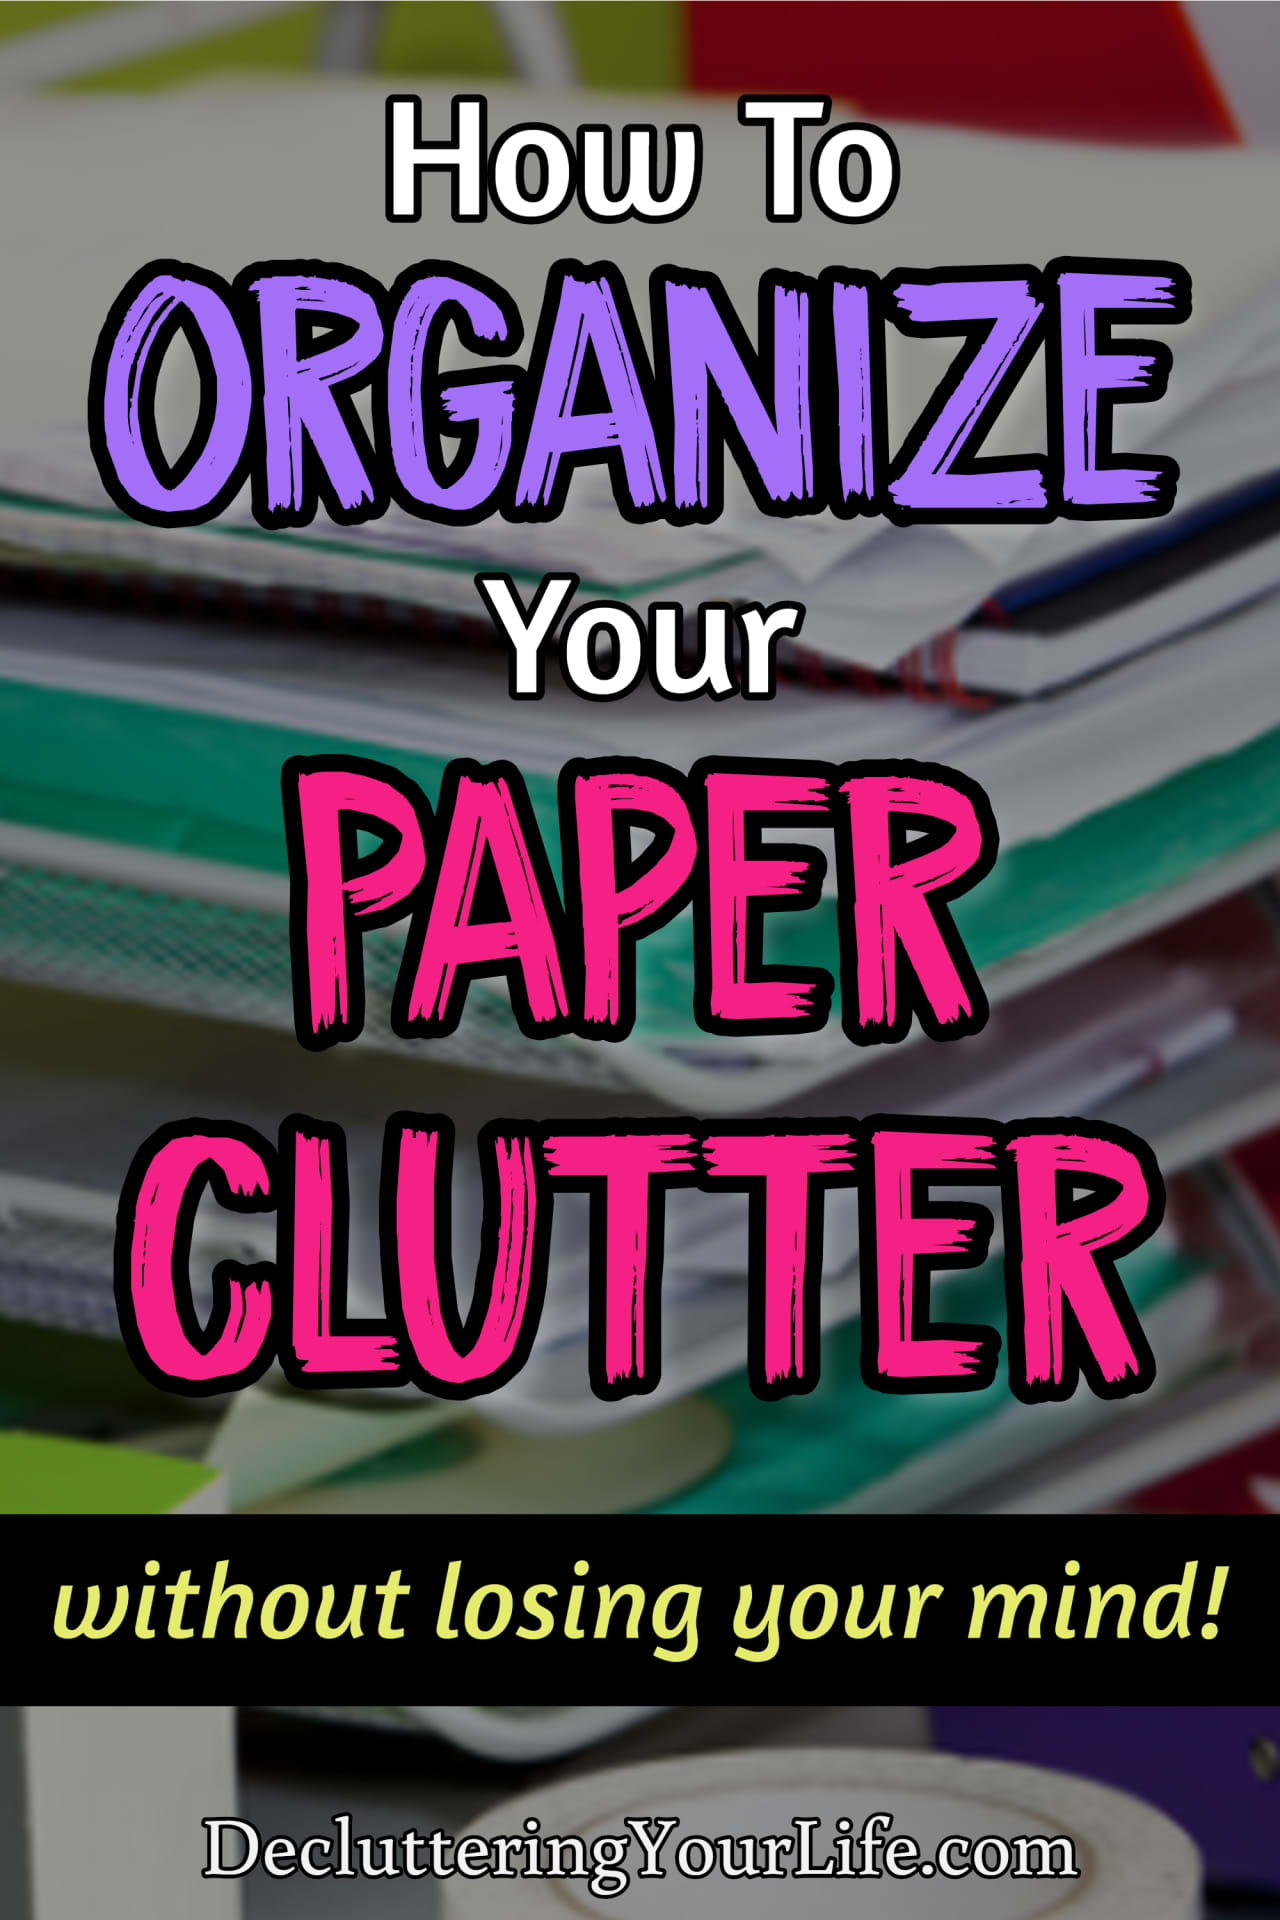 Paper Clutter Organization Tips, Tricks and HACKS!  How to FINALLY elimate your paper clutter piles and get your desk paperwork organized.  These paper clutter solutions are brilliant storage and organization ideas for your paperwork, bills, important documents and day to day paper clutter.